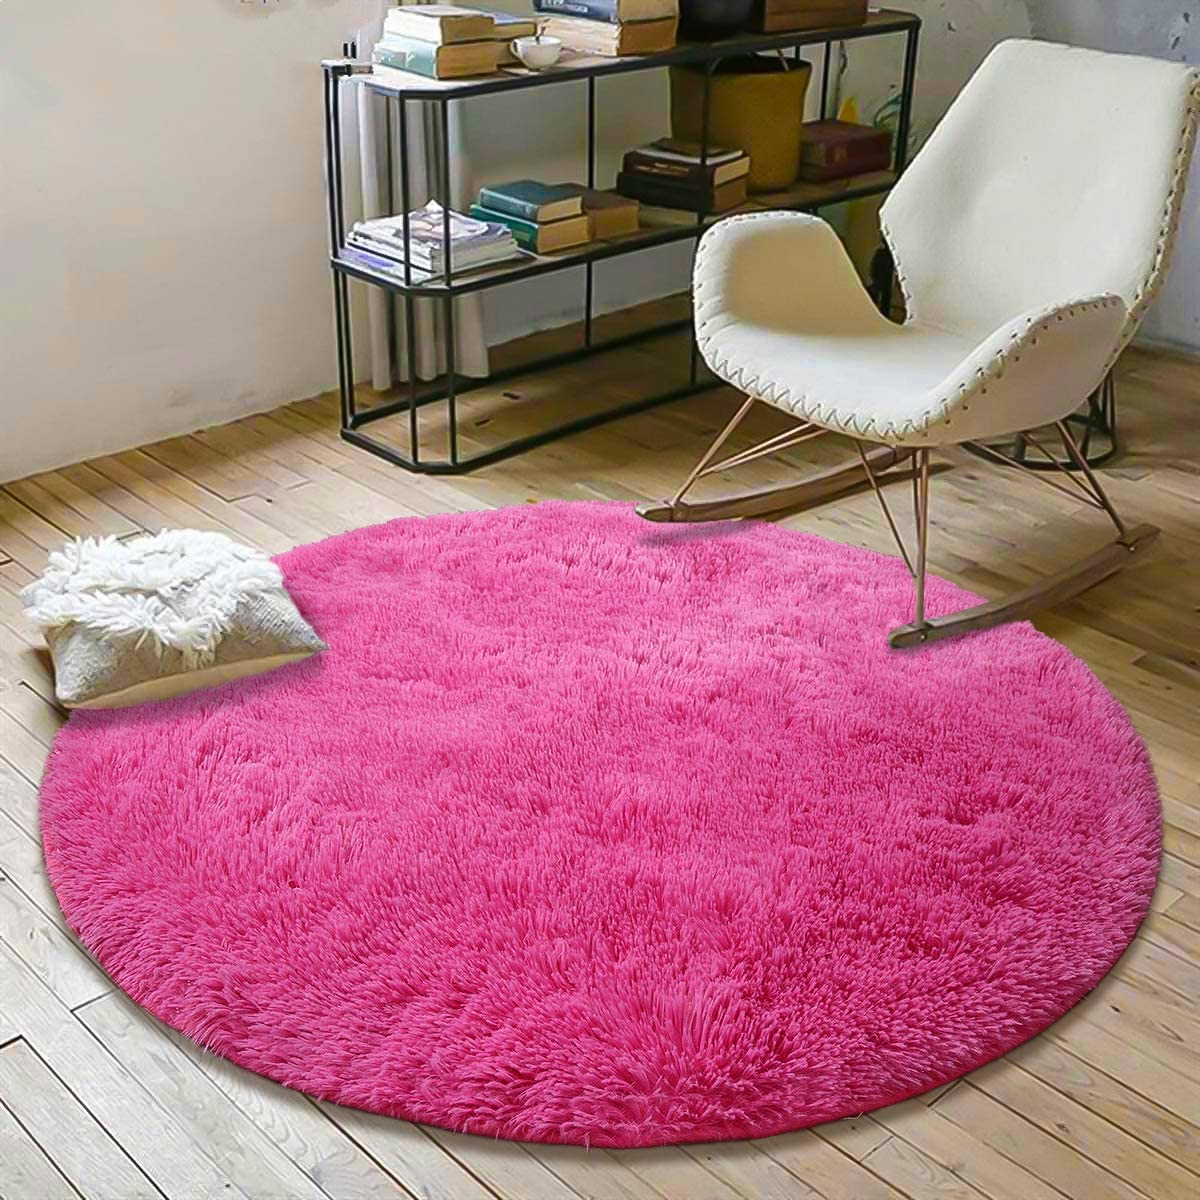 YOH Fluffy Soft Round Area Rugs for Kids Girls Room Princess Castle Plush Shaggy Carpet Cute Circle Furry Nursery Rug for Teen's Bedroom Living Room Home Decor Big Circular Floor Carpet 4'x4' Hot Pink